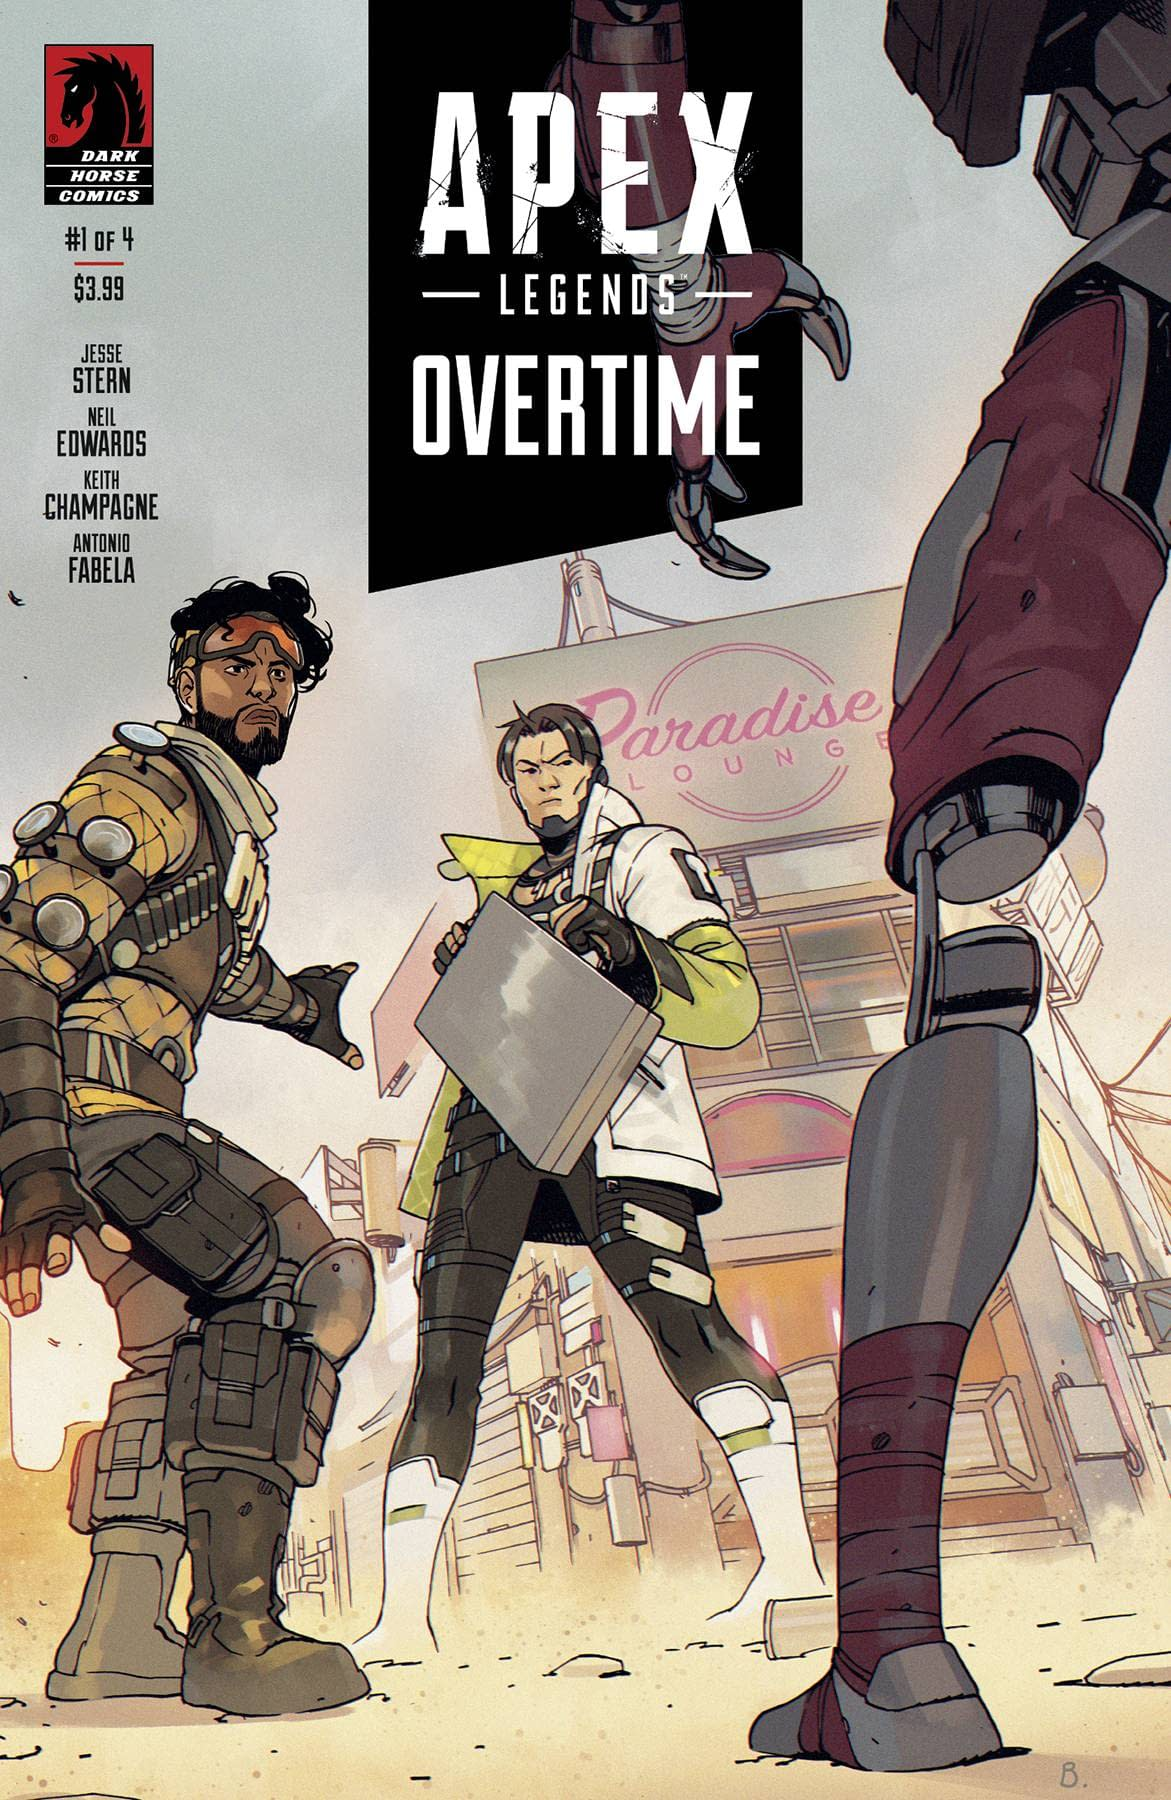 APEX LEGENDS OVERTIME #1 (OF 4)